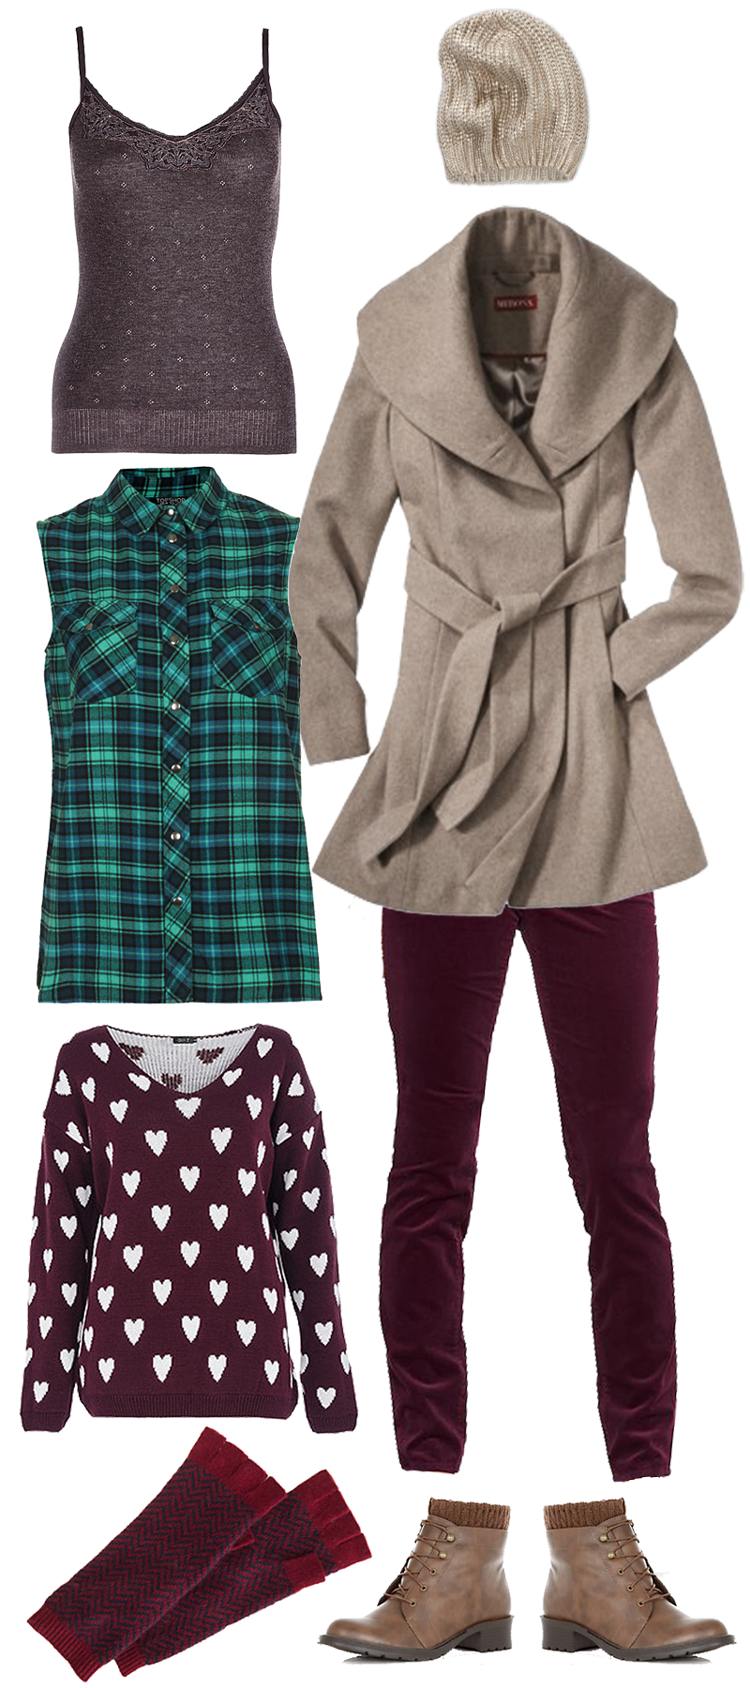 Ideas outfits for women - Thanks Giving Outfit Idea For Pear Shaped Women